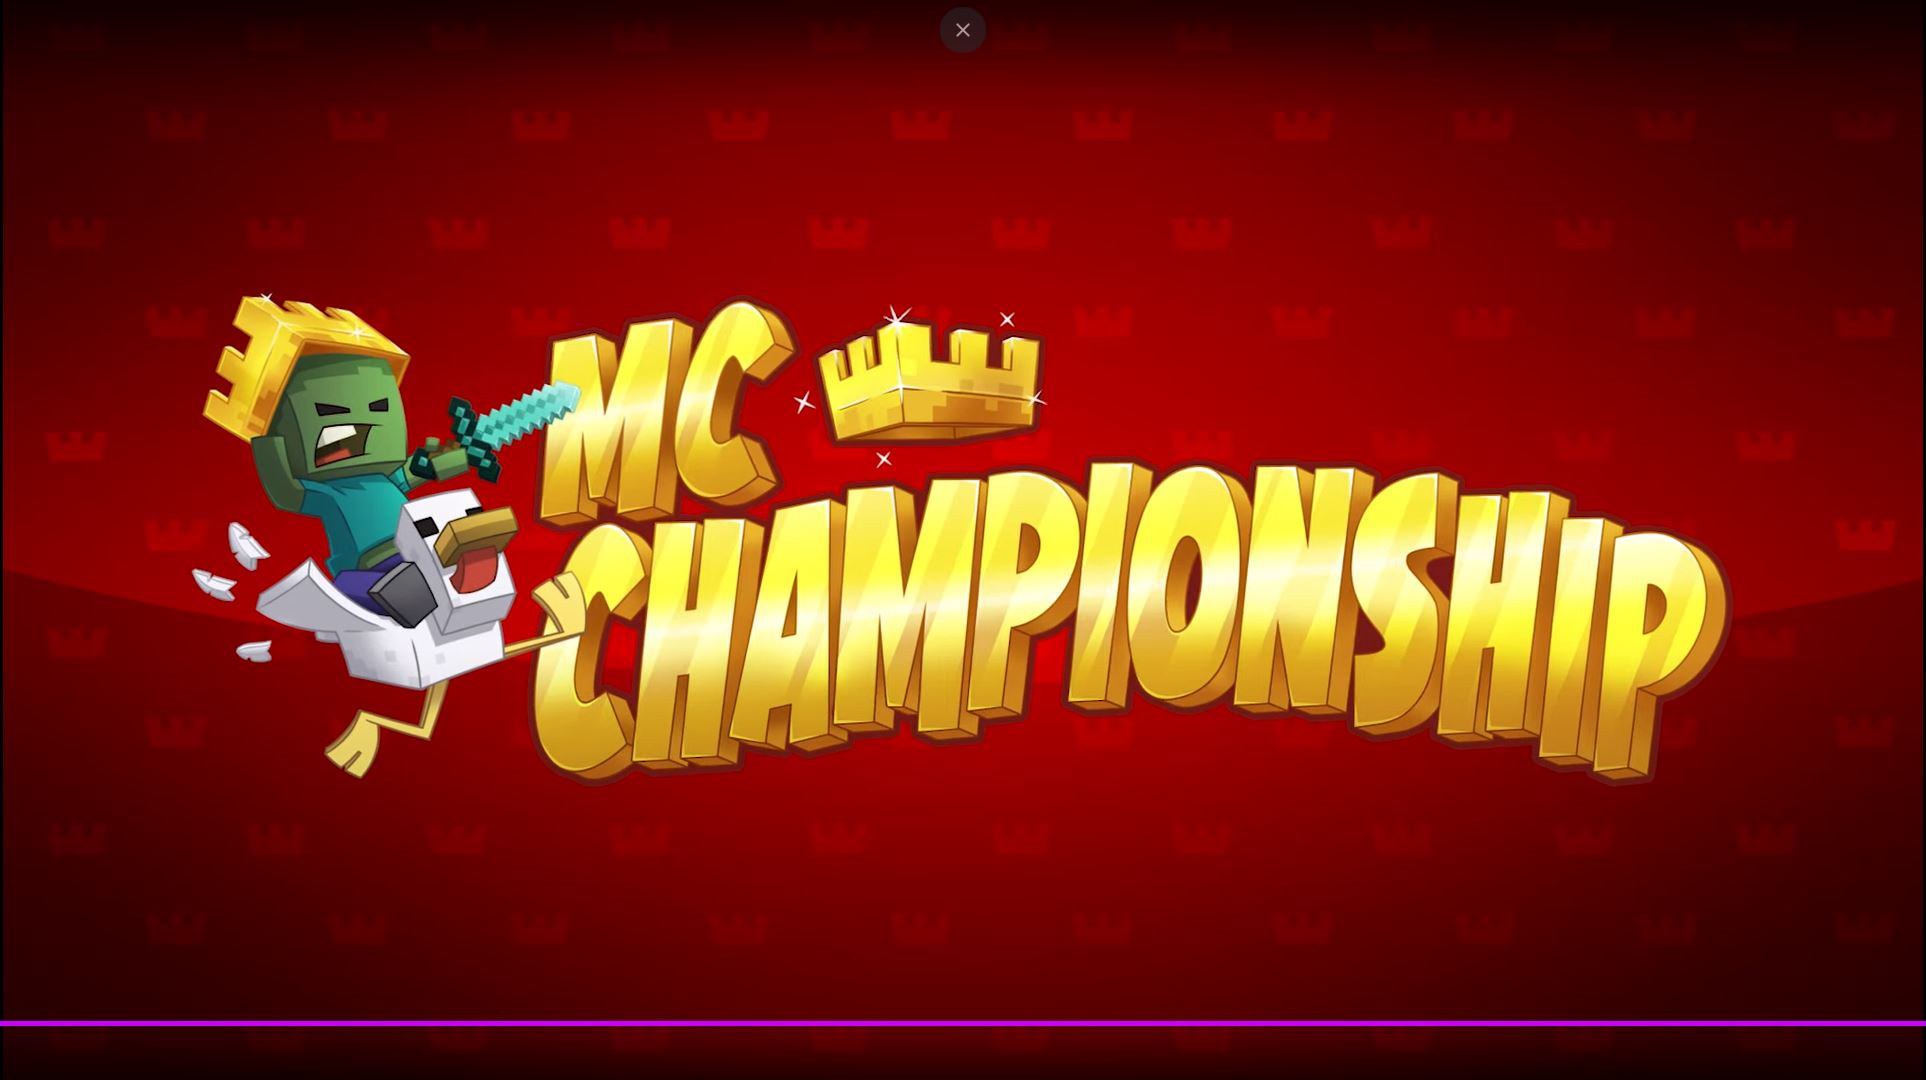 Minecraft MC Championship 8 Finished At August 15th, When Will The Next MC Championship Take Place?